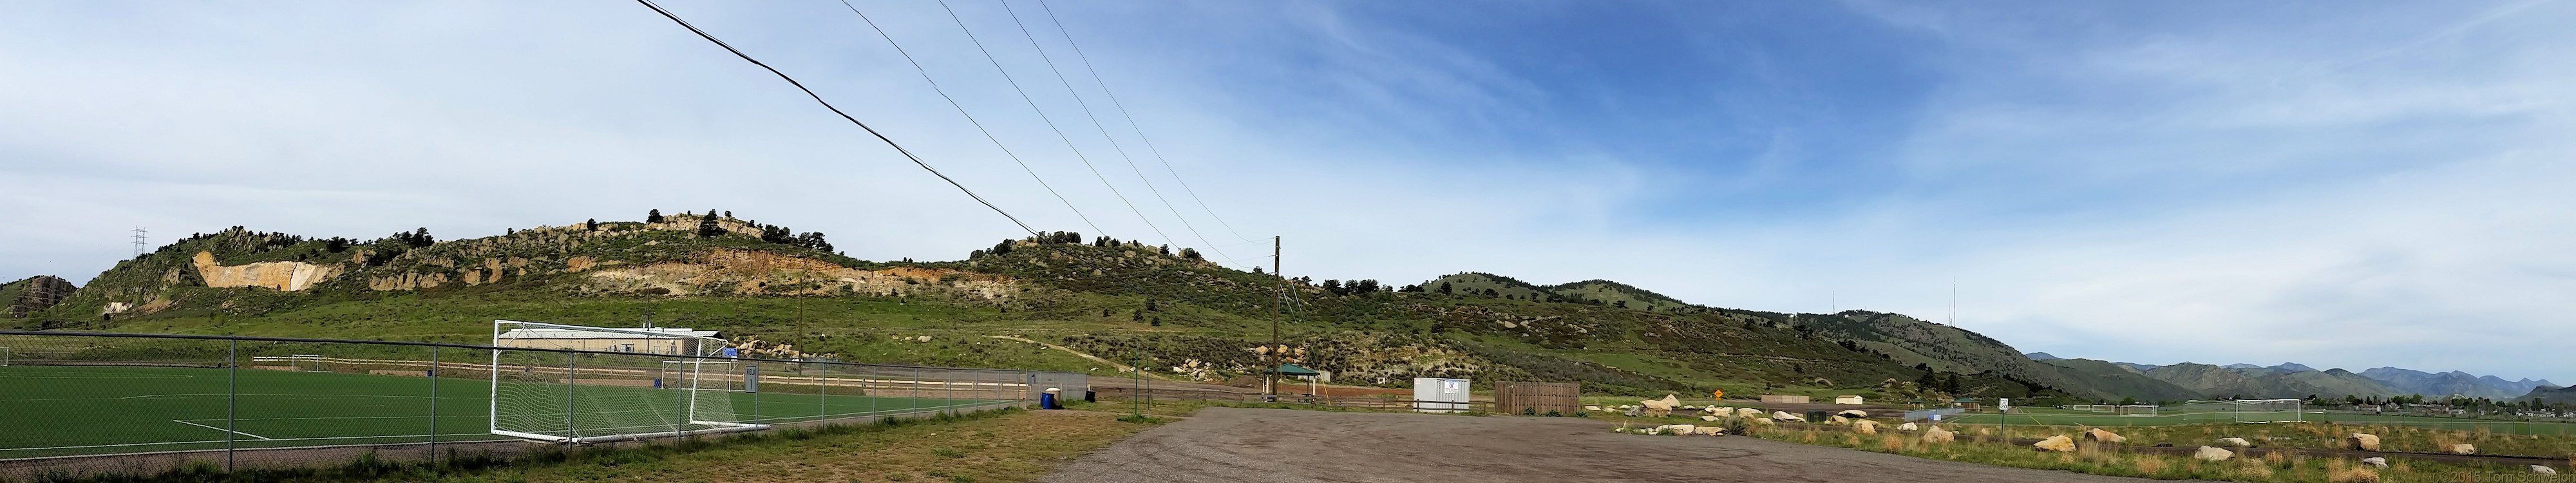 Colorado, Jefferson County, Rooney Road Sports Complex